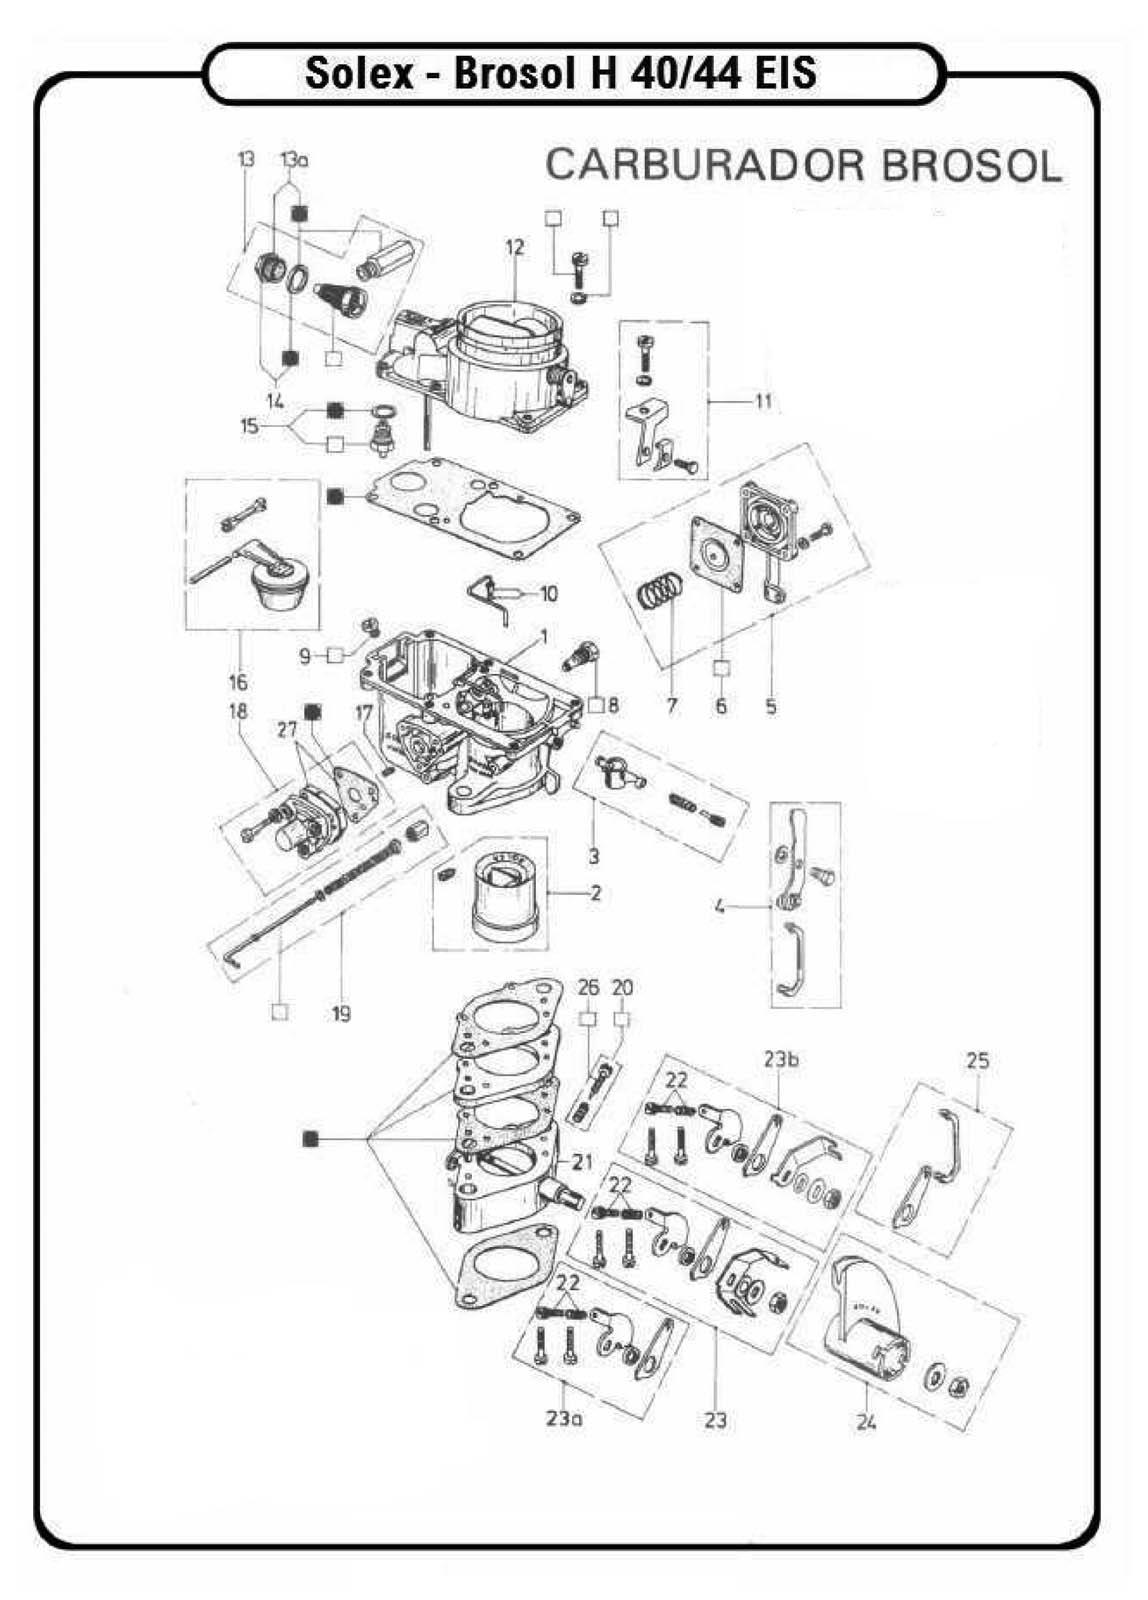 Volkswagen Solex Carburetor Diagram Wiring Diagrams